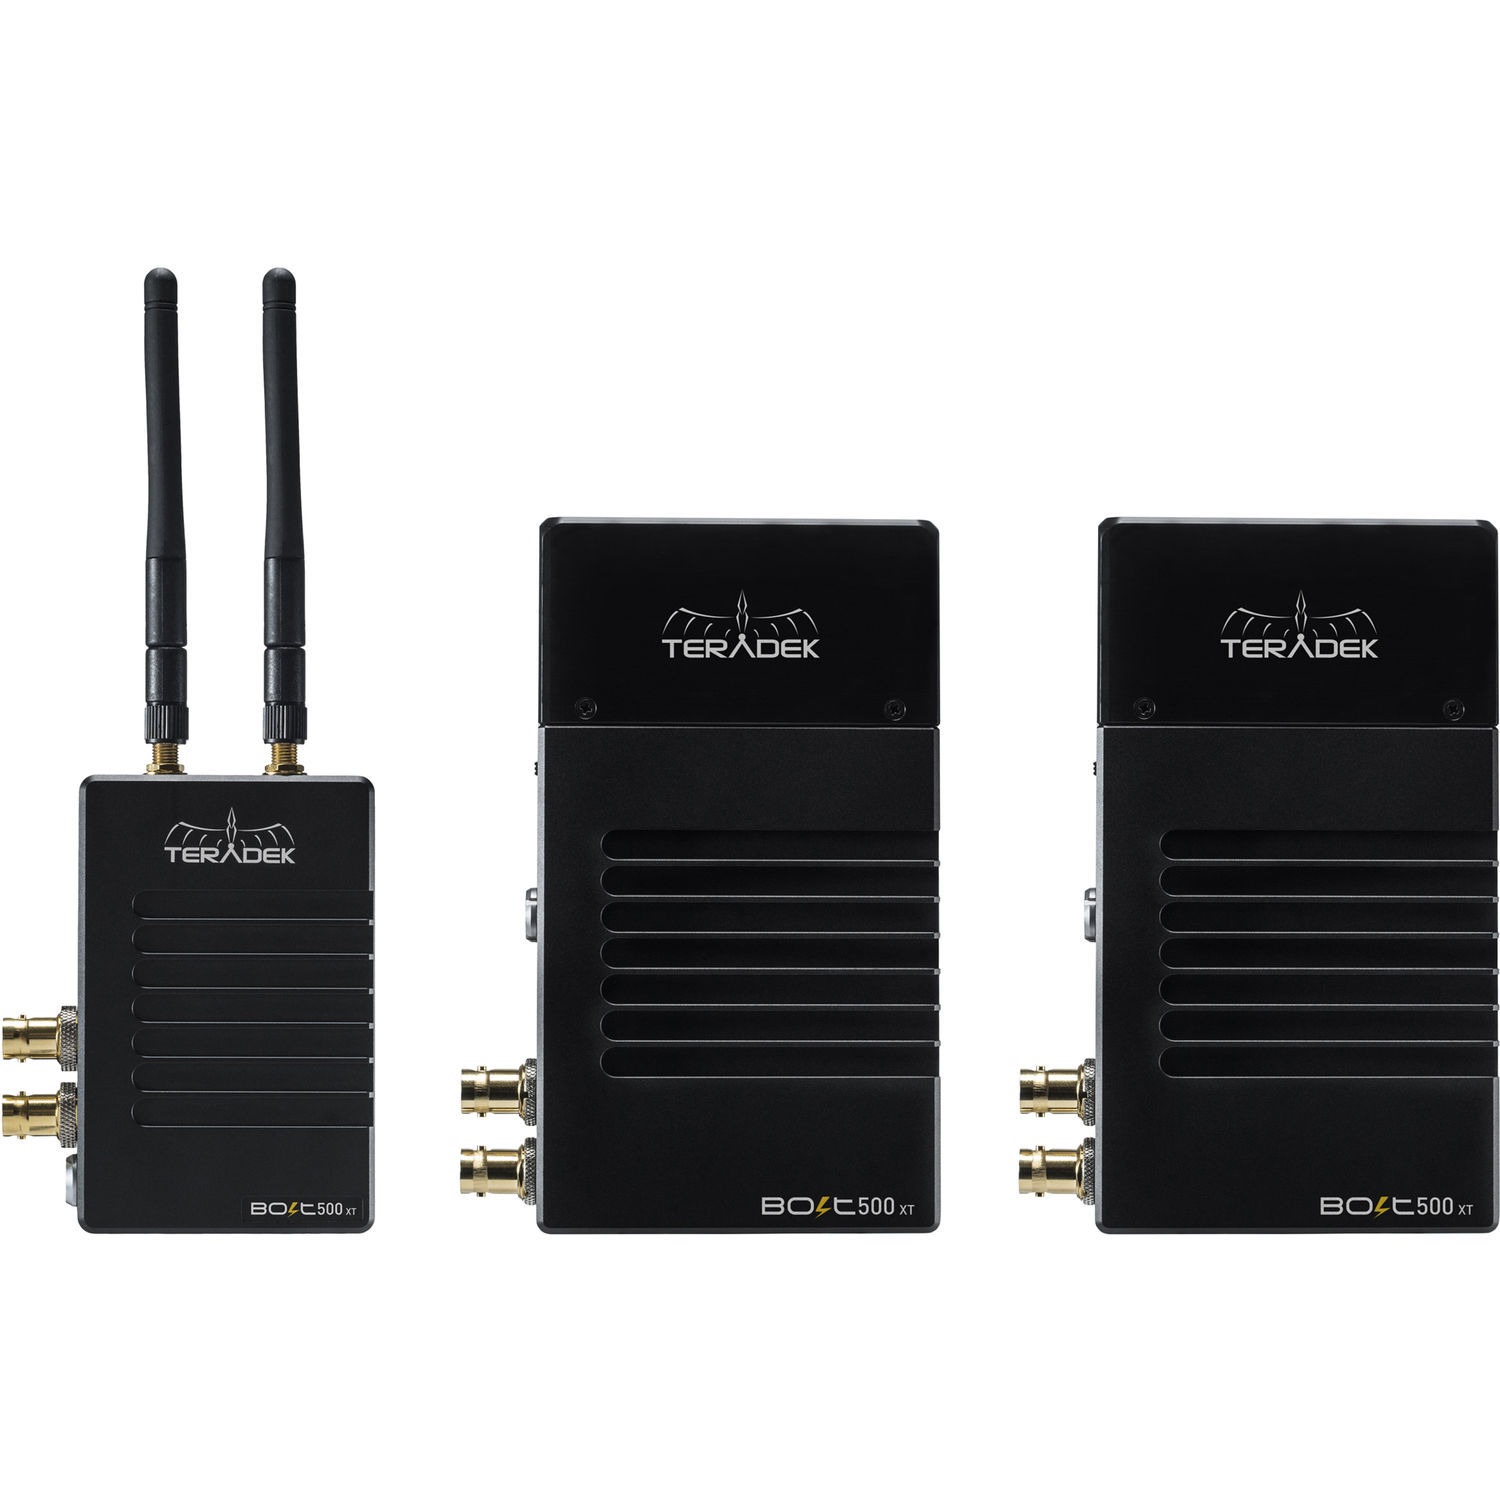 Teradek Bolt 500 XT 3G-SDI/HDMI Wireless Transmitter and 2 x Receiver Set